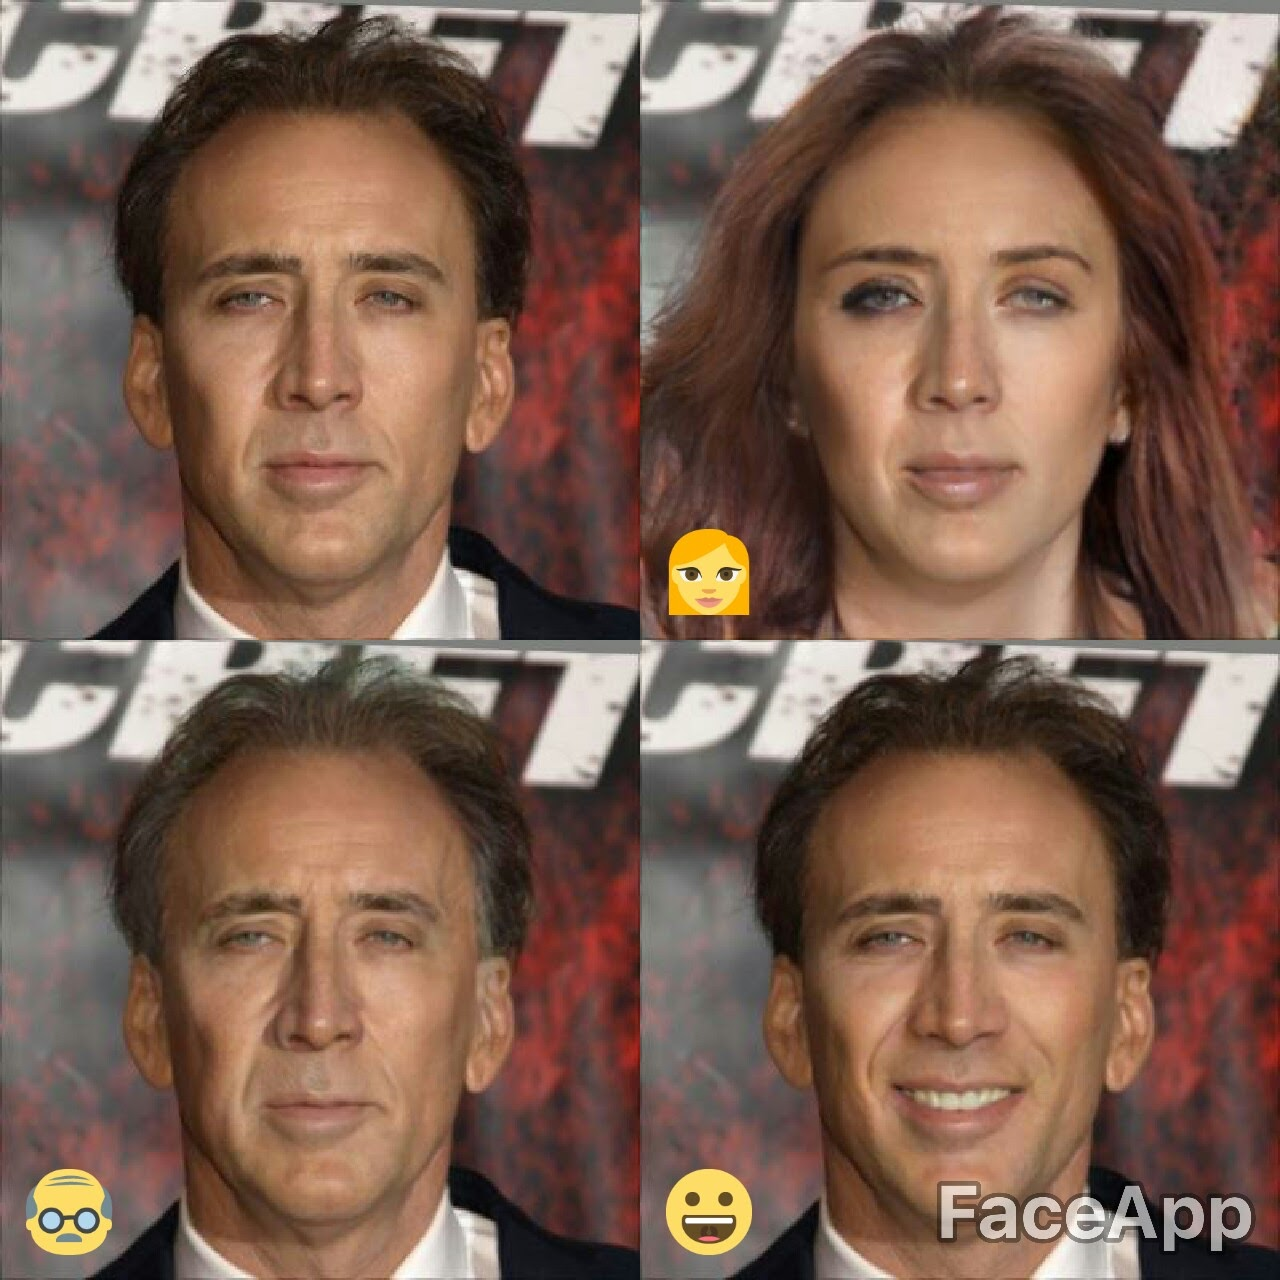 Nic Cage | FaceApp | Know Your Meme